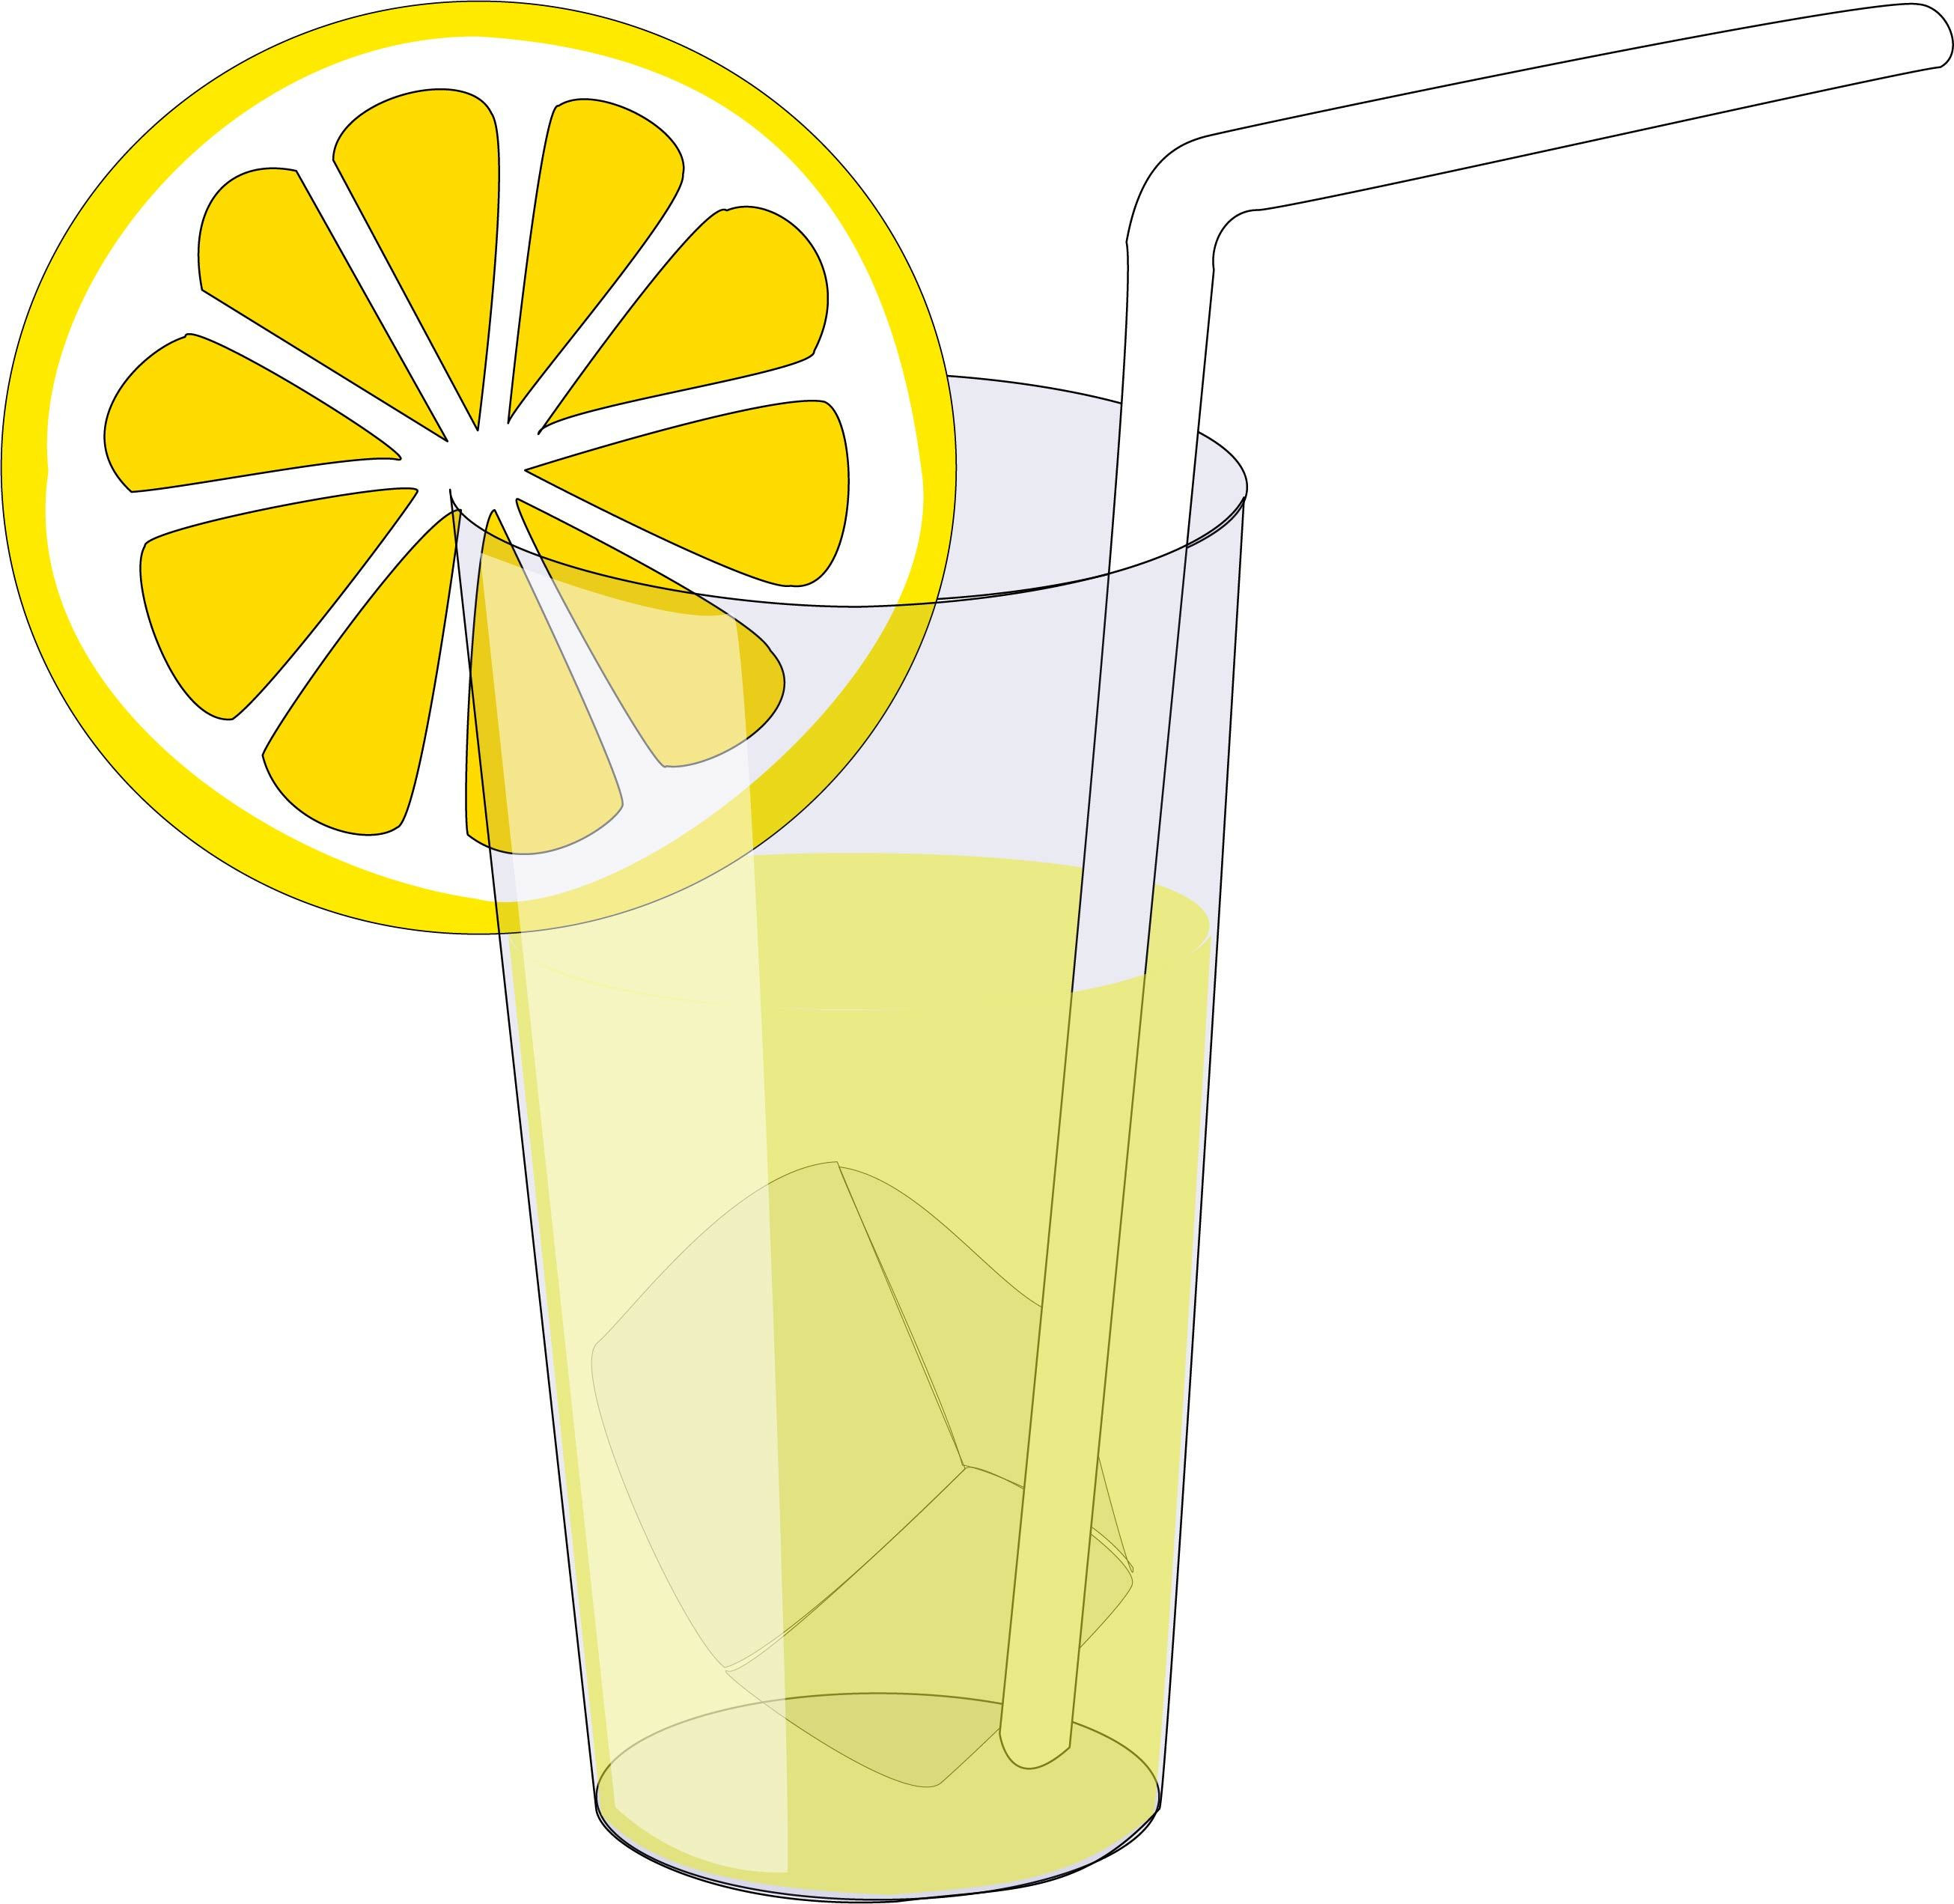 Ice and lemon slice svgglass full of lemonade svgbeverage